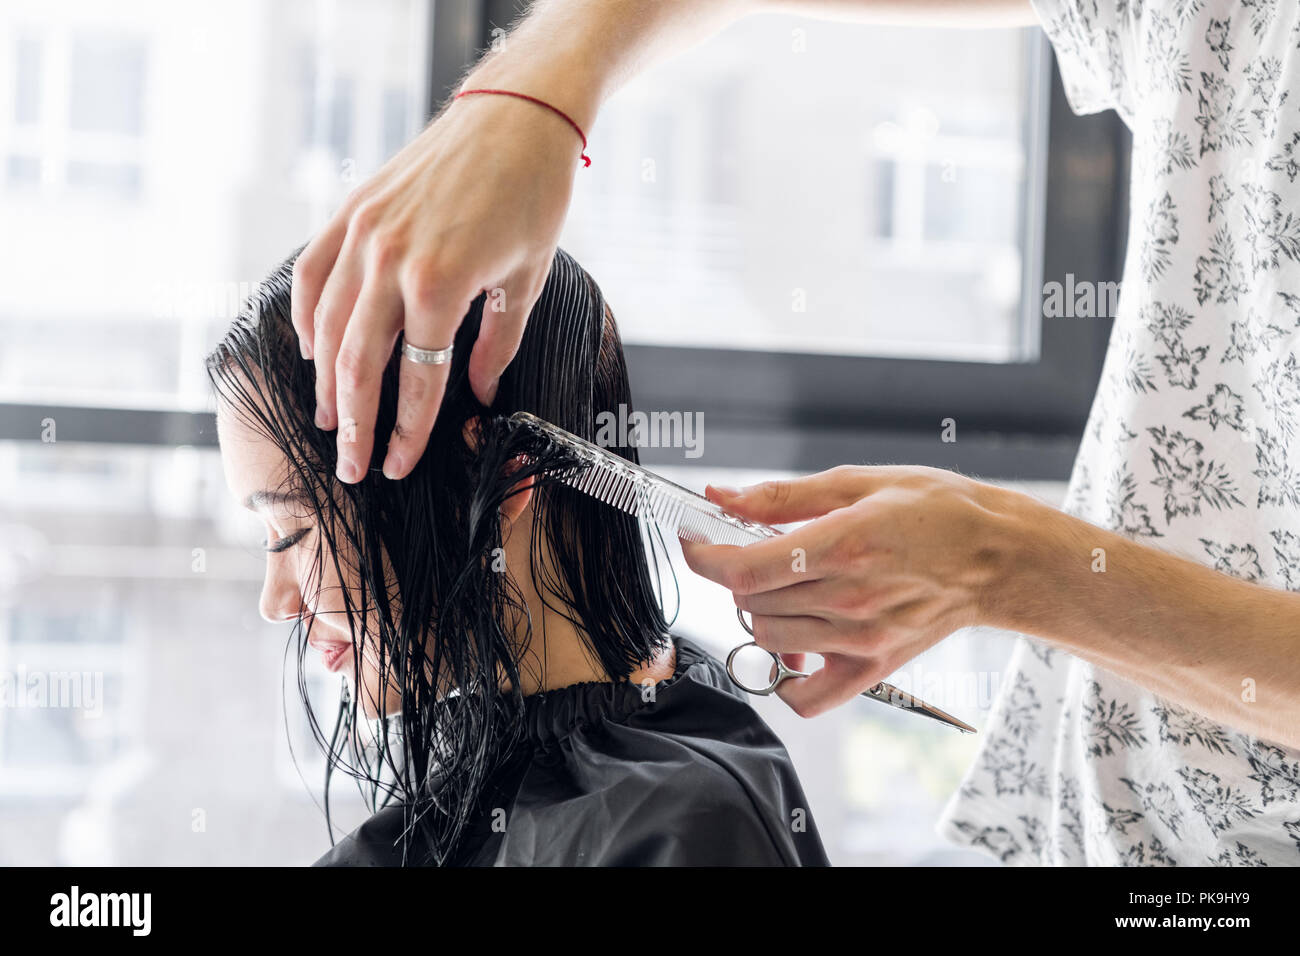 Young beautiful woman having her hair cut at the hairdresser's. Young male hairdresser smiling and making hairstyle to the customer. - Stock Image